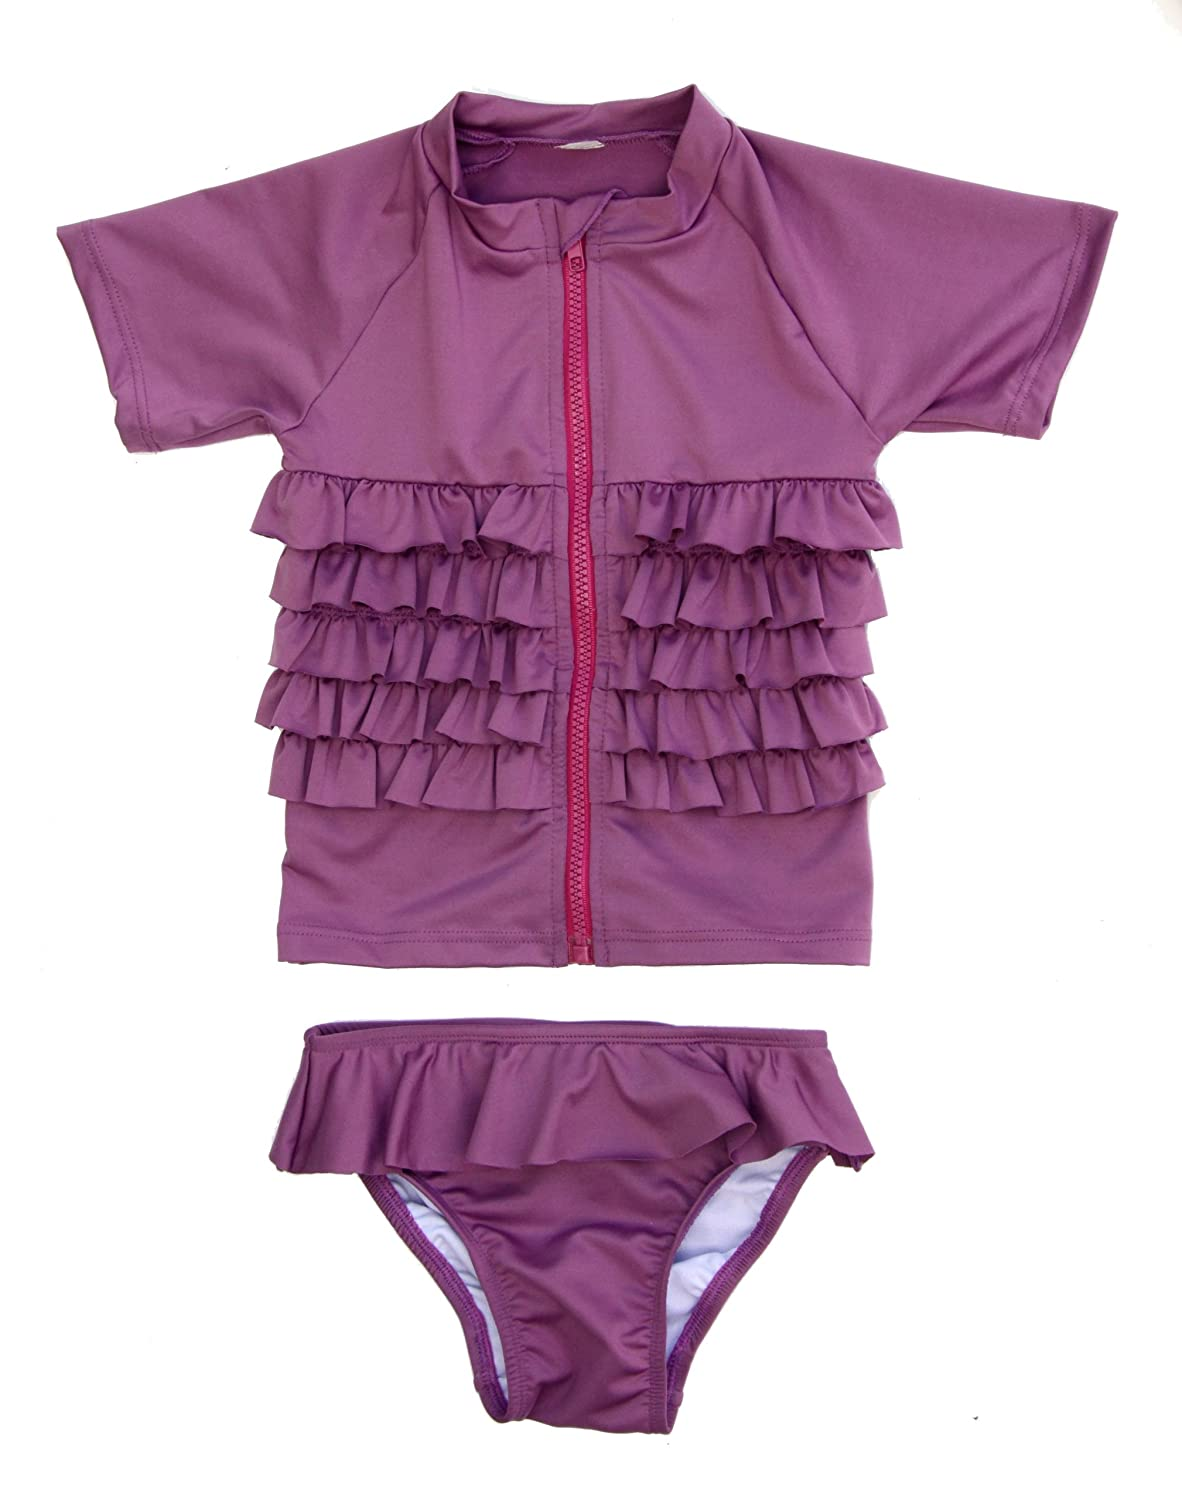 Ruffle Me Pretty - UV Sun Protective Rash Guard Swimsuit Set by SwimZip Swimwear